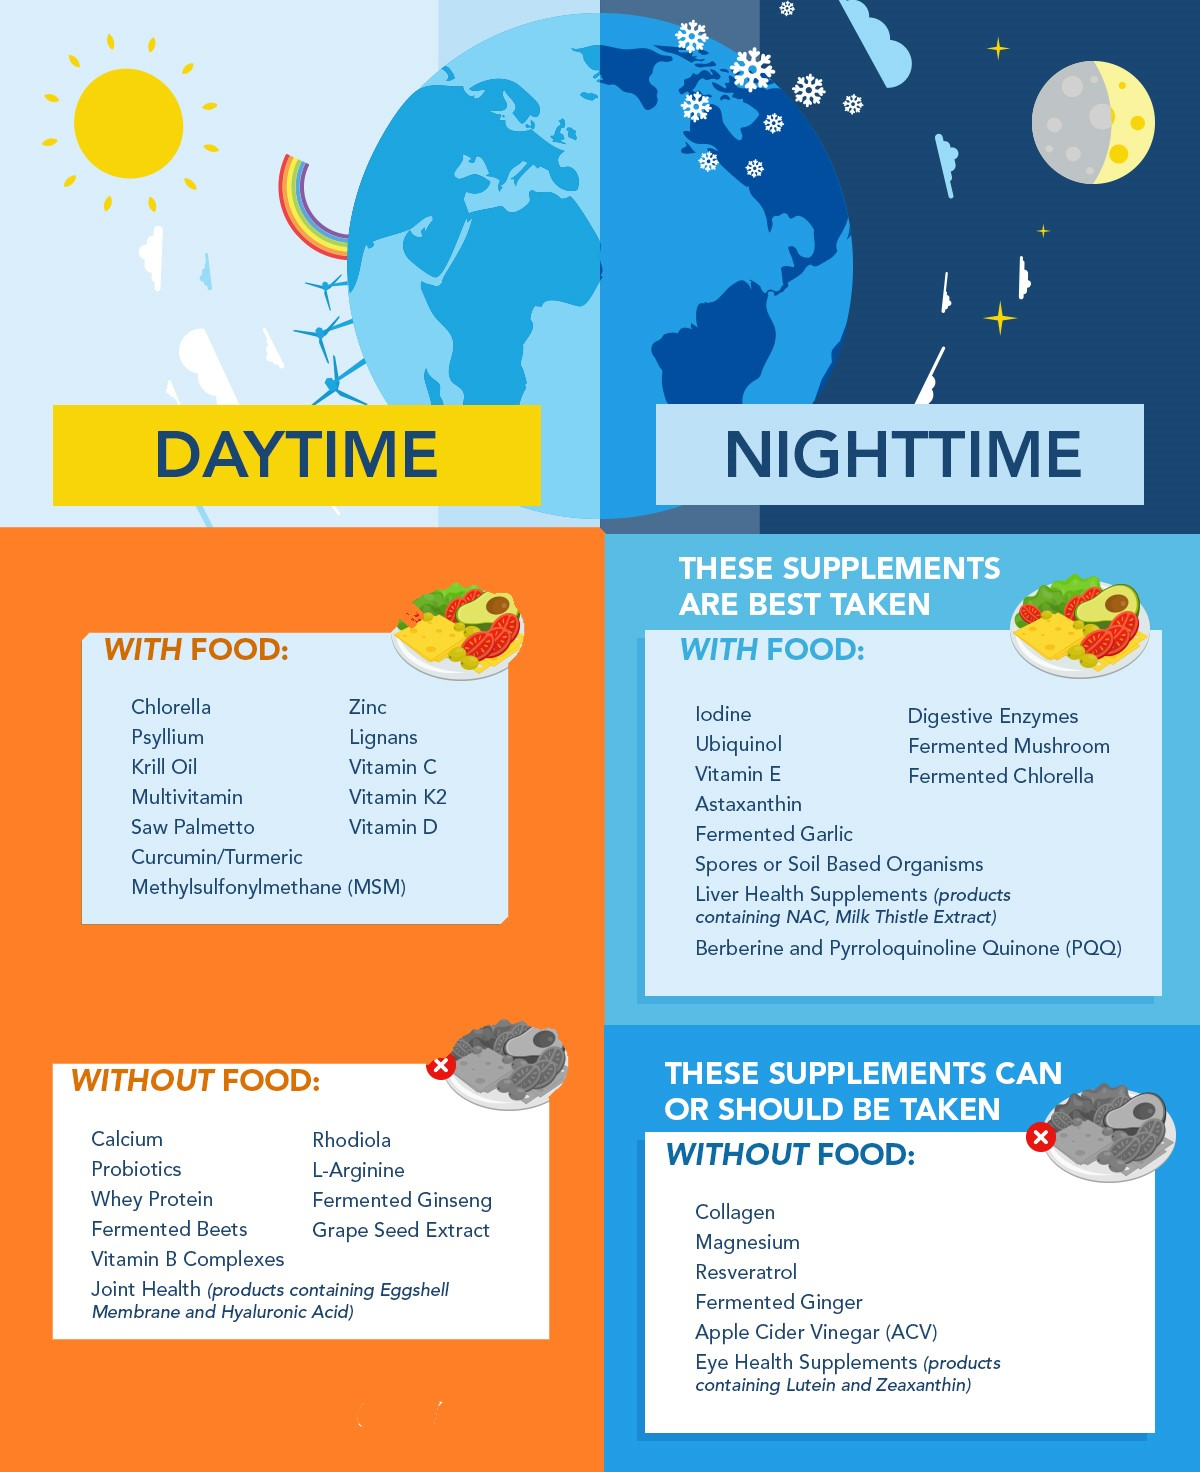 GUIDE FOR THE TIMING OF NUTRITIONAL SUPPLEMENTS